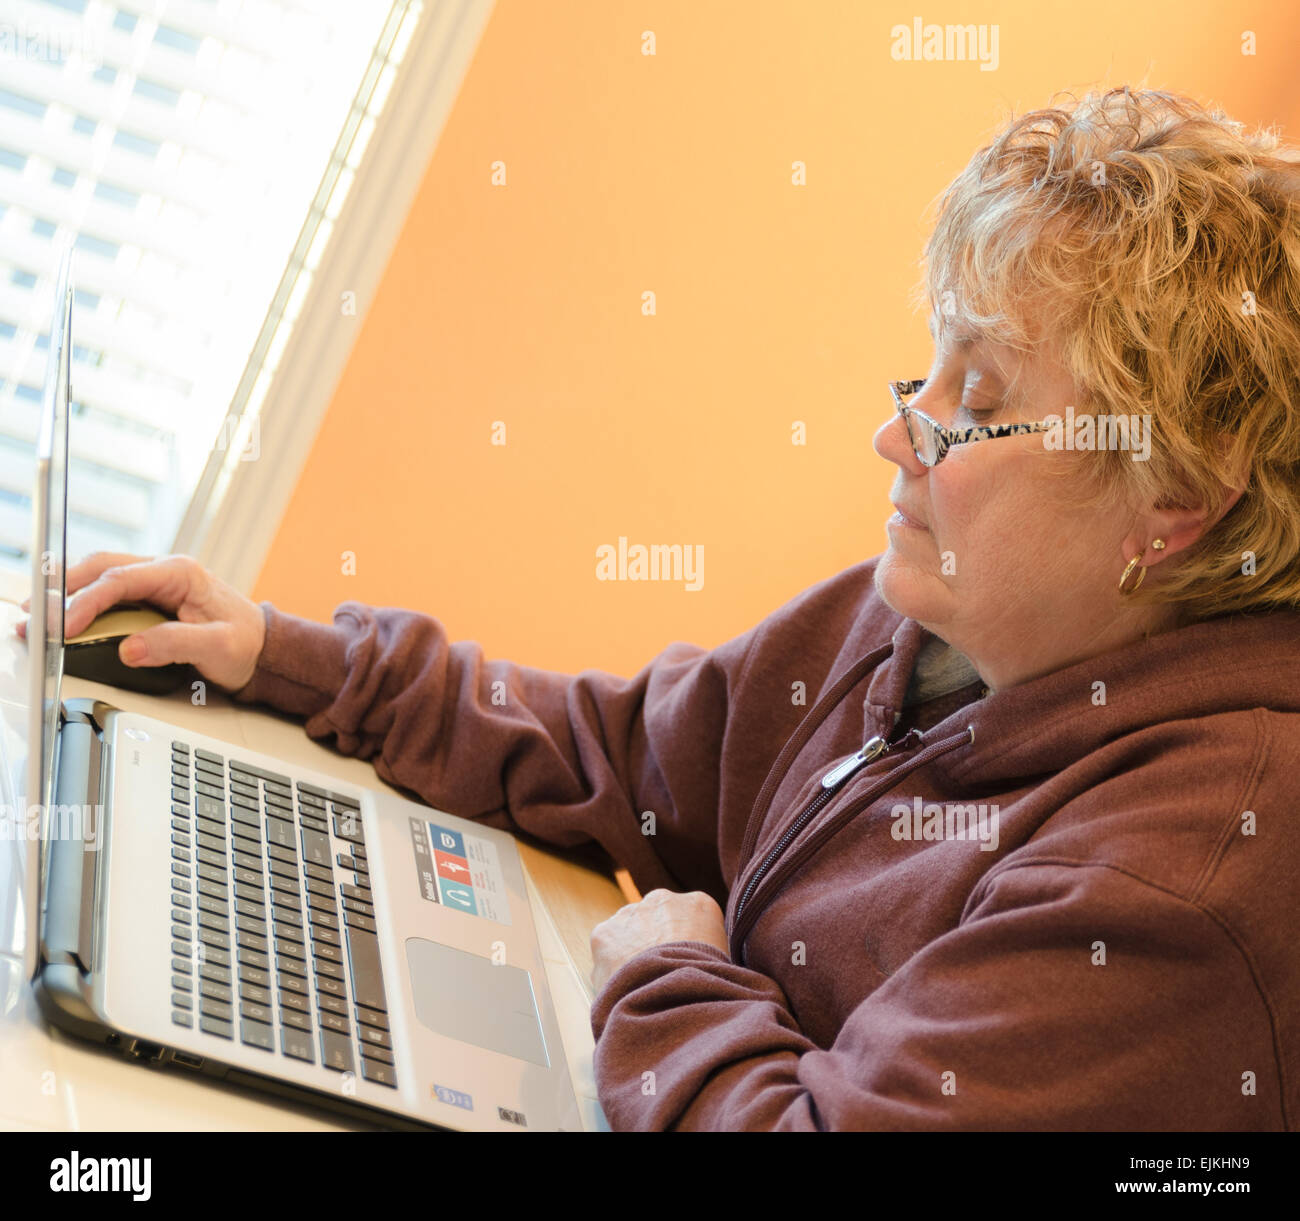 Female age 60-65 working with a laptop computer - Stock Image